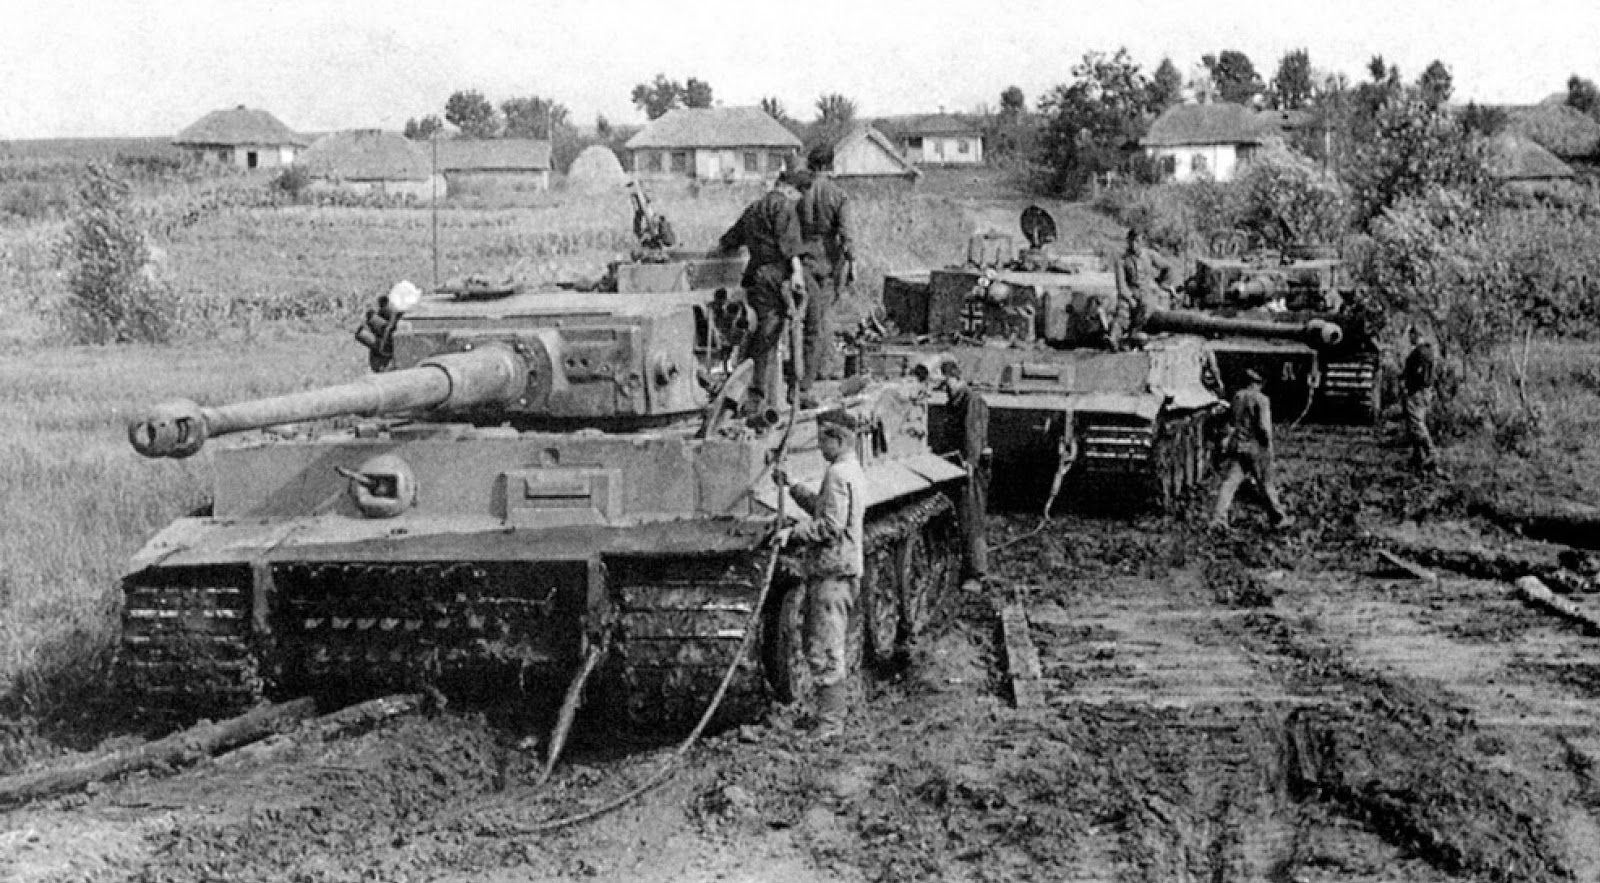 The formidable Tiger 1, perhaps the most famous tank of WW2, made its combat debut near Leningrad in late 1942, in time for the mud (as here), to which it was ill suited because of its weight.  Mounting the deadly 88mm gun and heavily armoured, it was a fearsome opponent to all allied armour for the rest of the war.